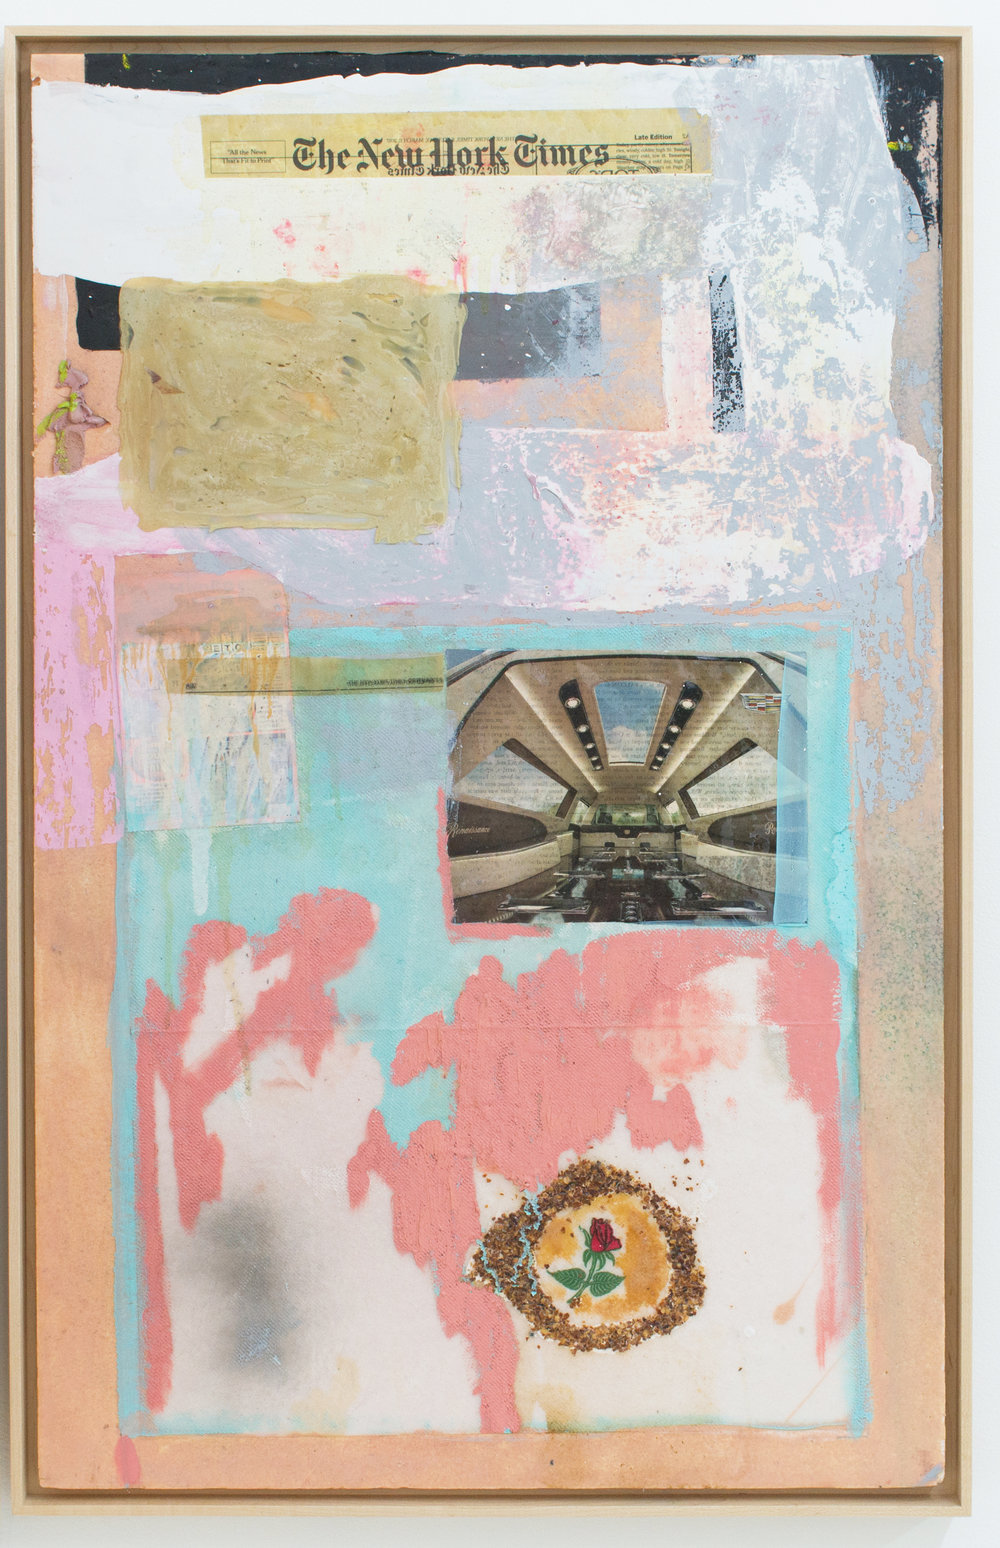 Mark Starling   Spicy Obit,  2017 Rose printed napkin, crushed red pepper flakes, dye, lottery ticket, newspaper, magazine, oil paint, acrylic paint, resin, industrial adhesive and polystyrene mounted on masonite 35 x 22 x 1.5 inches